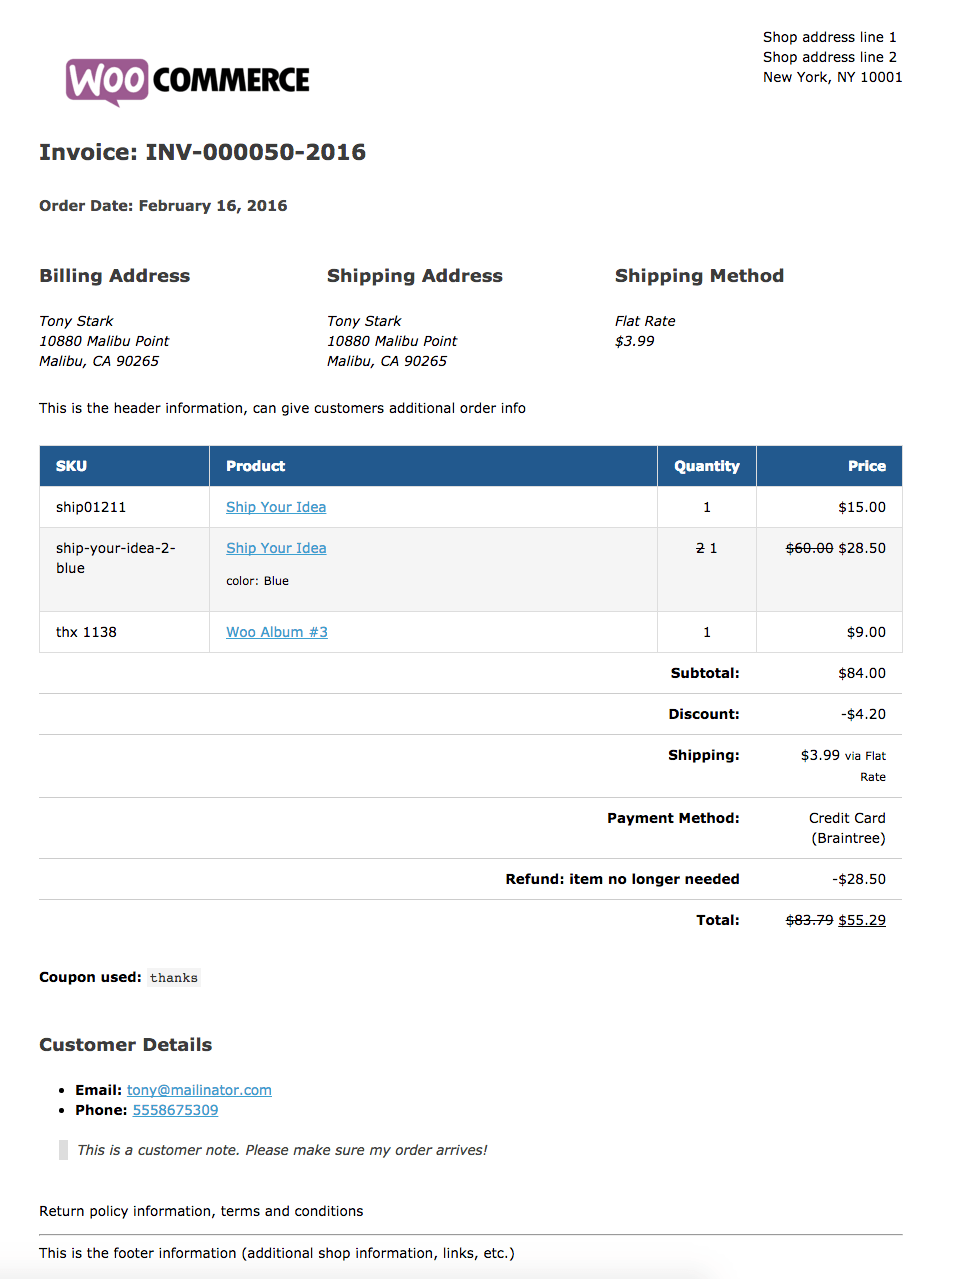 Breakupus  Pleasing Print Invoices Amp Packing Lists  Woocommerce With Goodlooking View A Sample Invoice  With Awesome Canada Customs Invoice Form Also Invoice Template Docx In Addition Invoice Freelance And How To Get Invoice Price As Well As Best Invoice App For Android Additionally Mercedes Invoice Price From Woocommercecom With Breakupus  Goodlooking Print Invoices Amp Packing Lists  Woocommerce With Awesome View A Sample Invoice  And Pleasing Canada Customs Invoice Form Also Invoice Template Docx In Addition Invoice Freelance From Woocommercecom